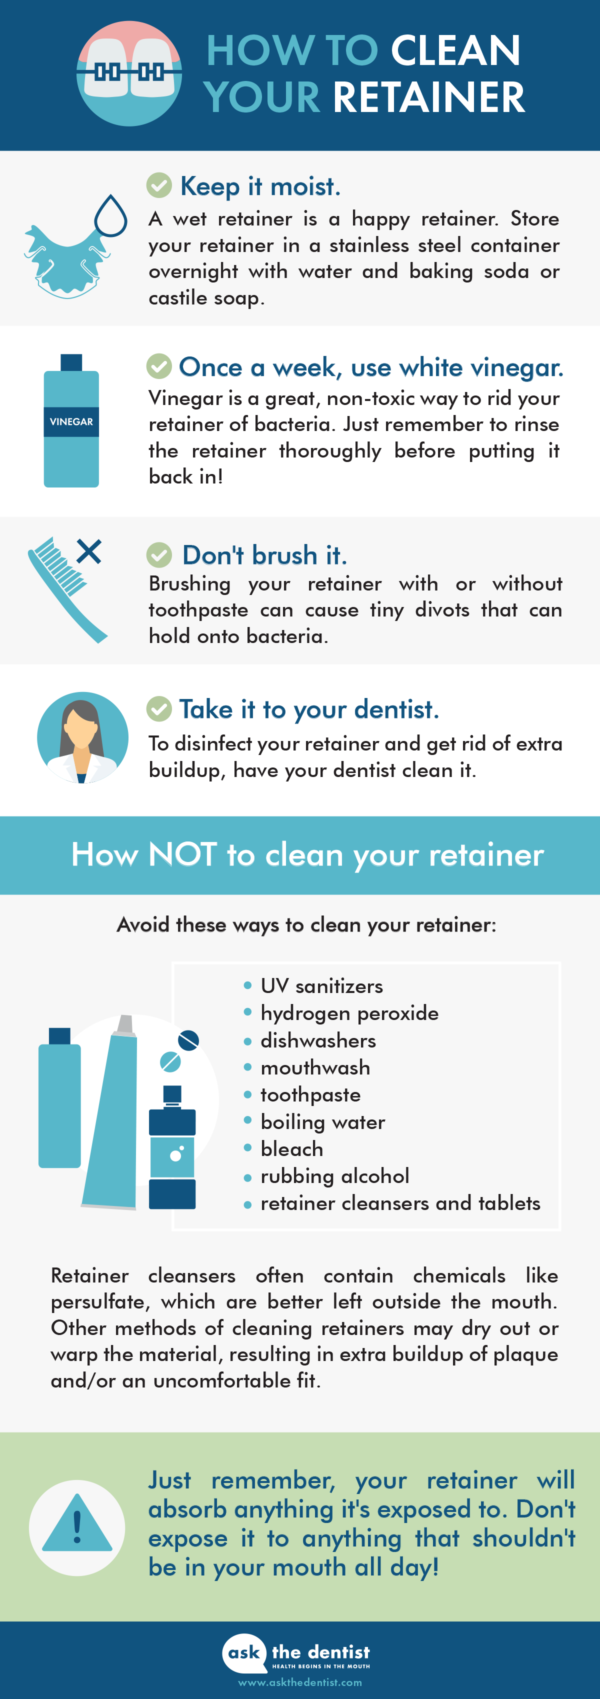 The Best 4 Ways To Clean Your Retainer (No Harsh Chemicals